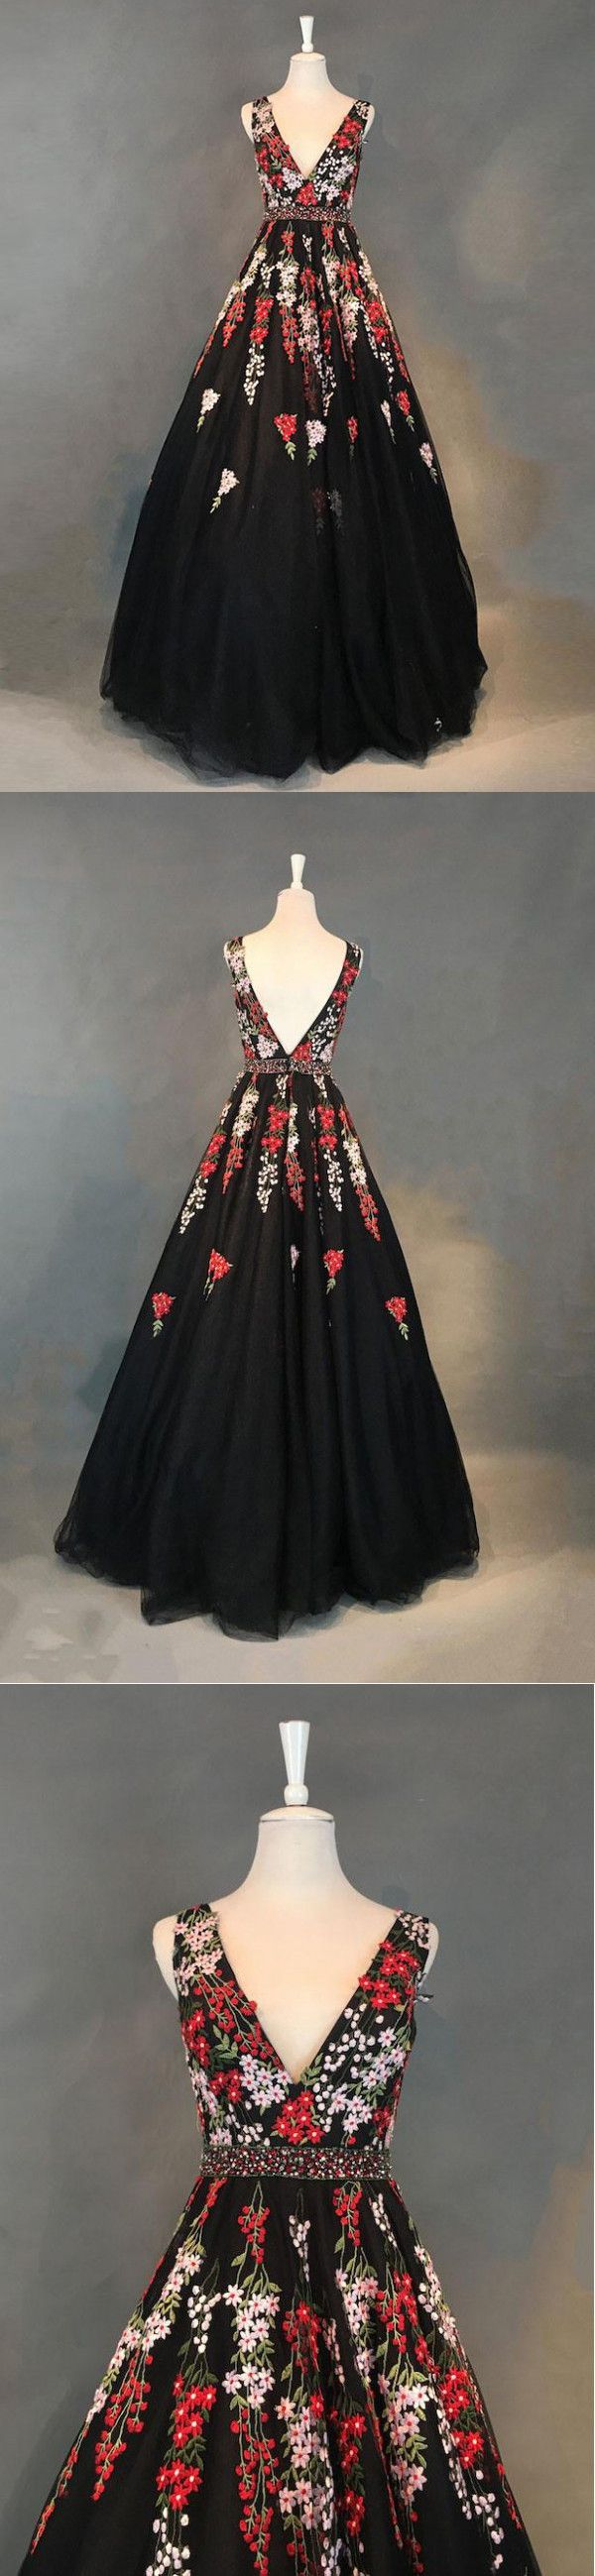 black floral prom dress vintage v neck prom dress vb in